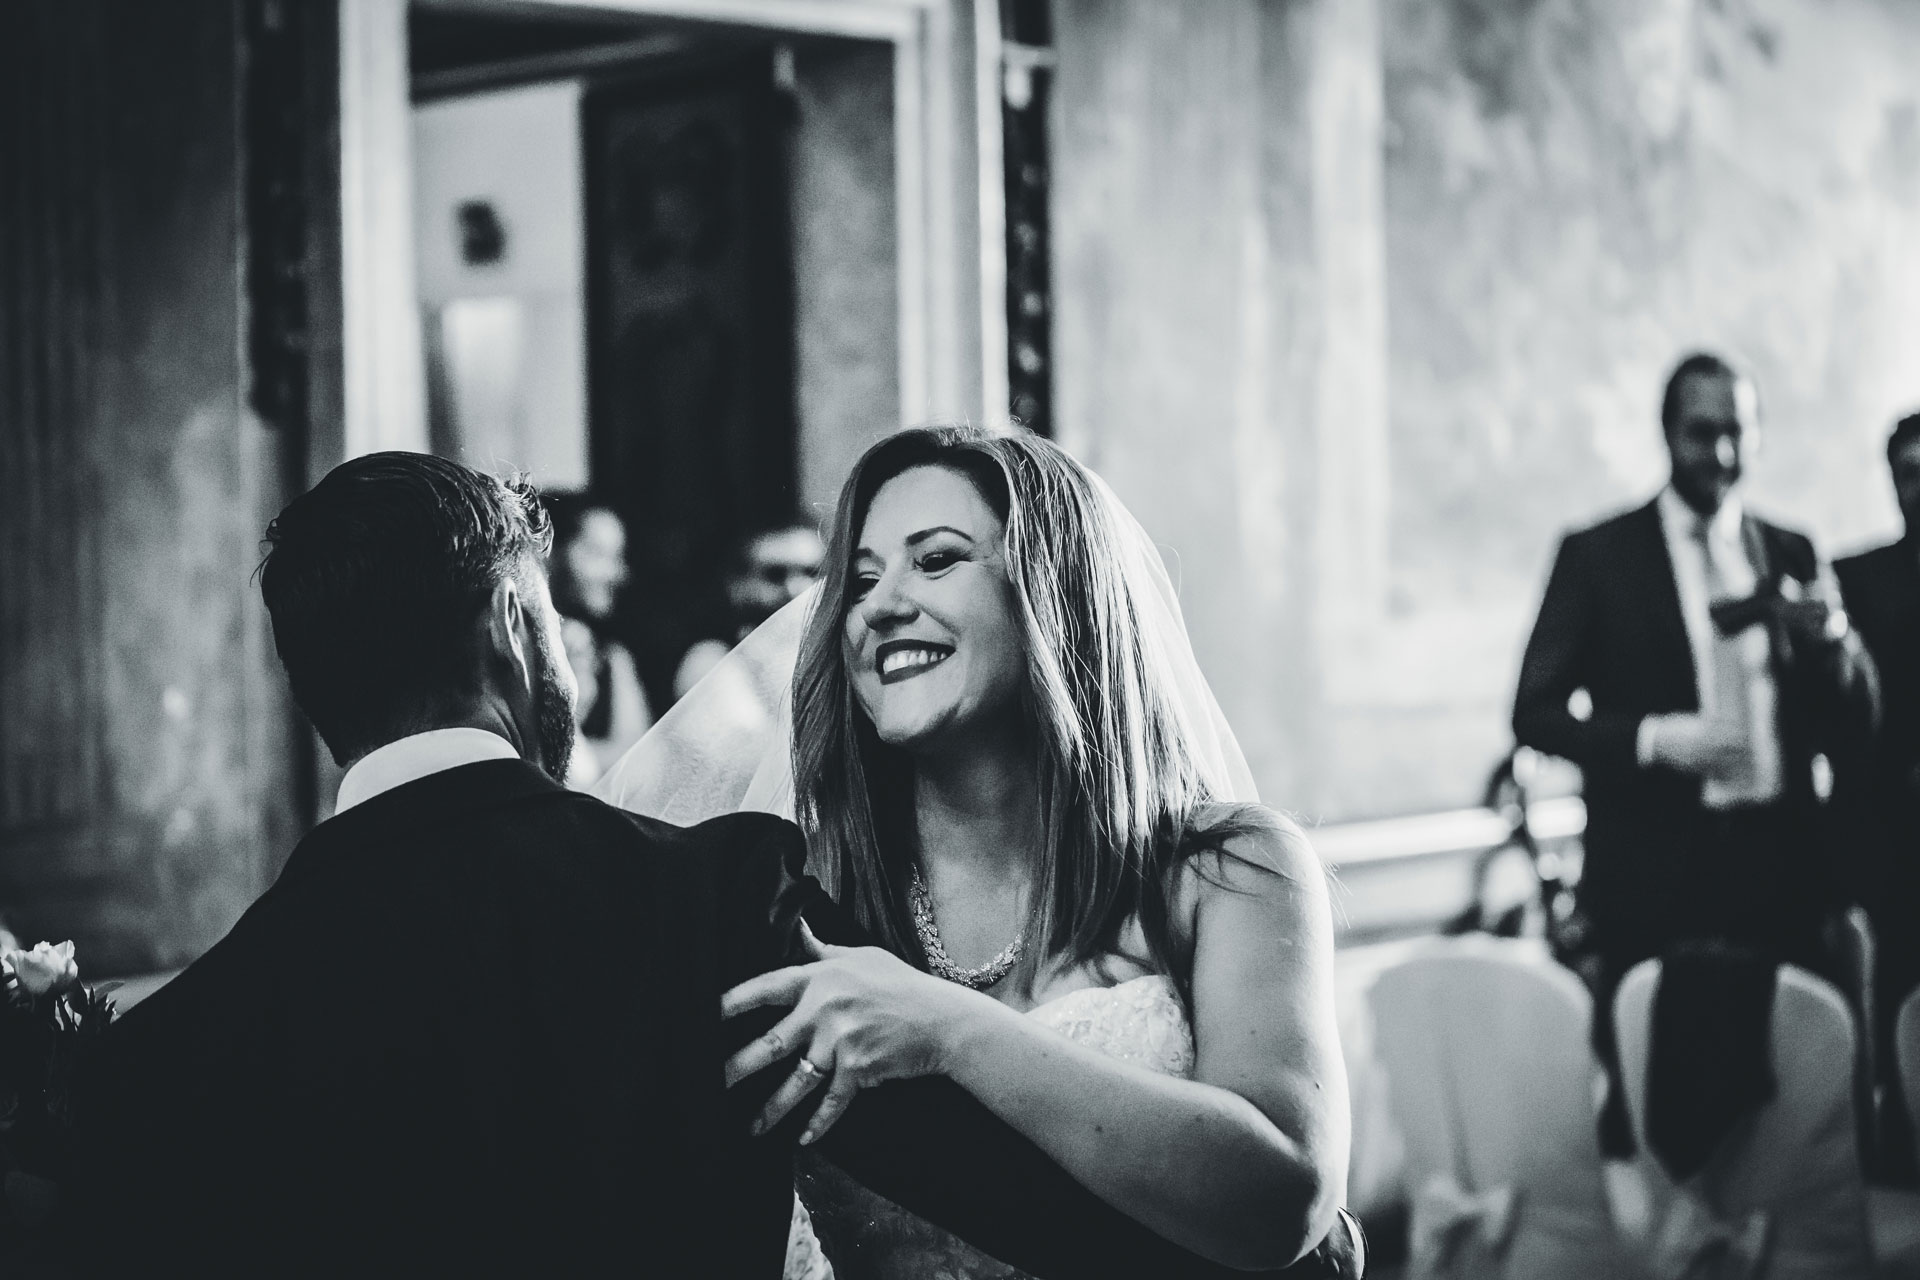 Romantic Ca Sagredo Wedding Photo from Venice - Italy | The couple shares their first dance